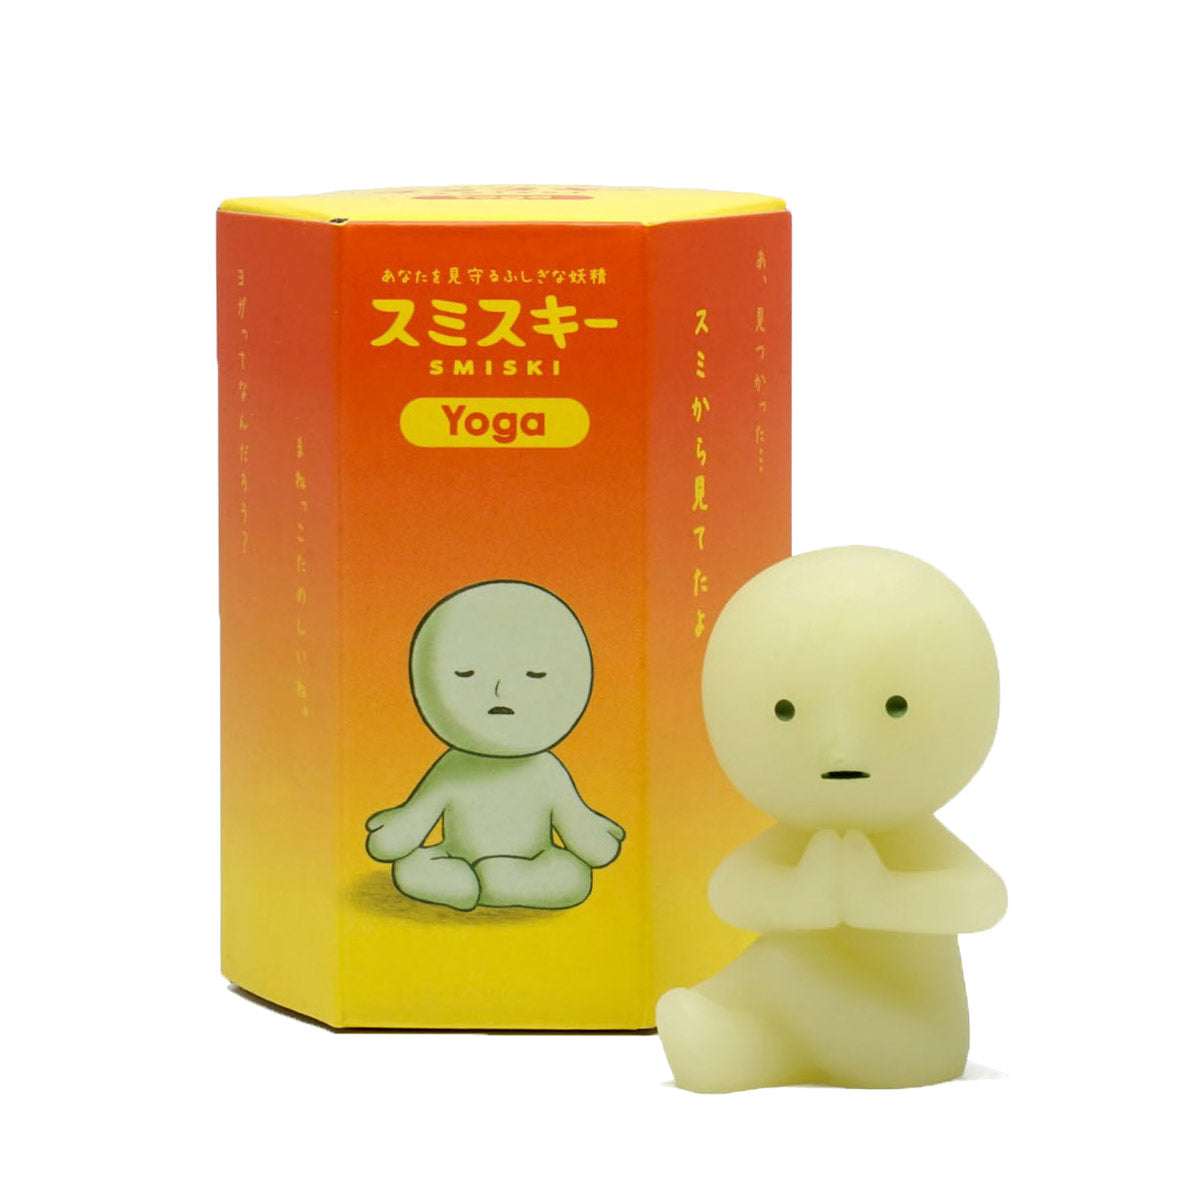 Smiski Yoga Series Glow in the Dark Blind Box by Dreams from Leanna Lin's Wonderland